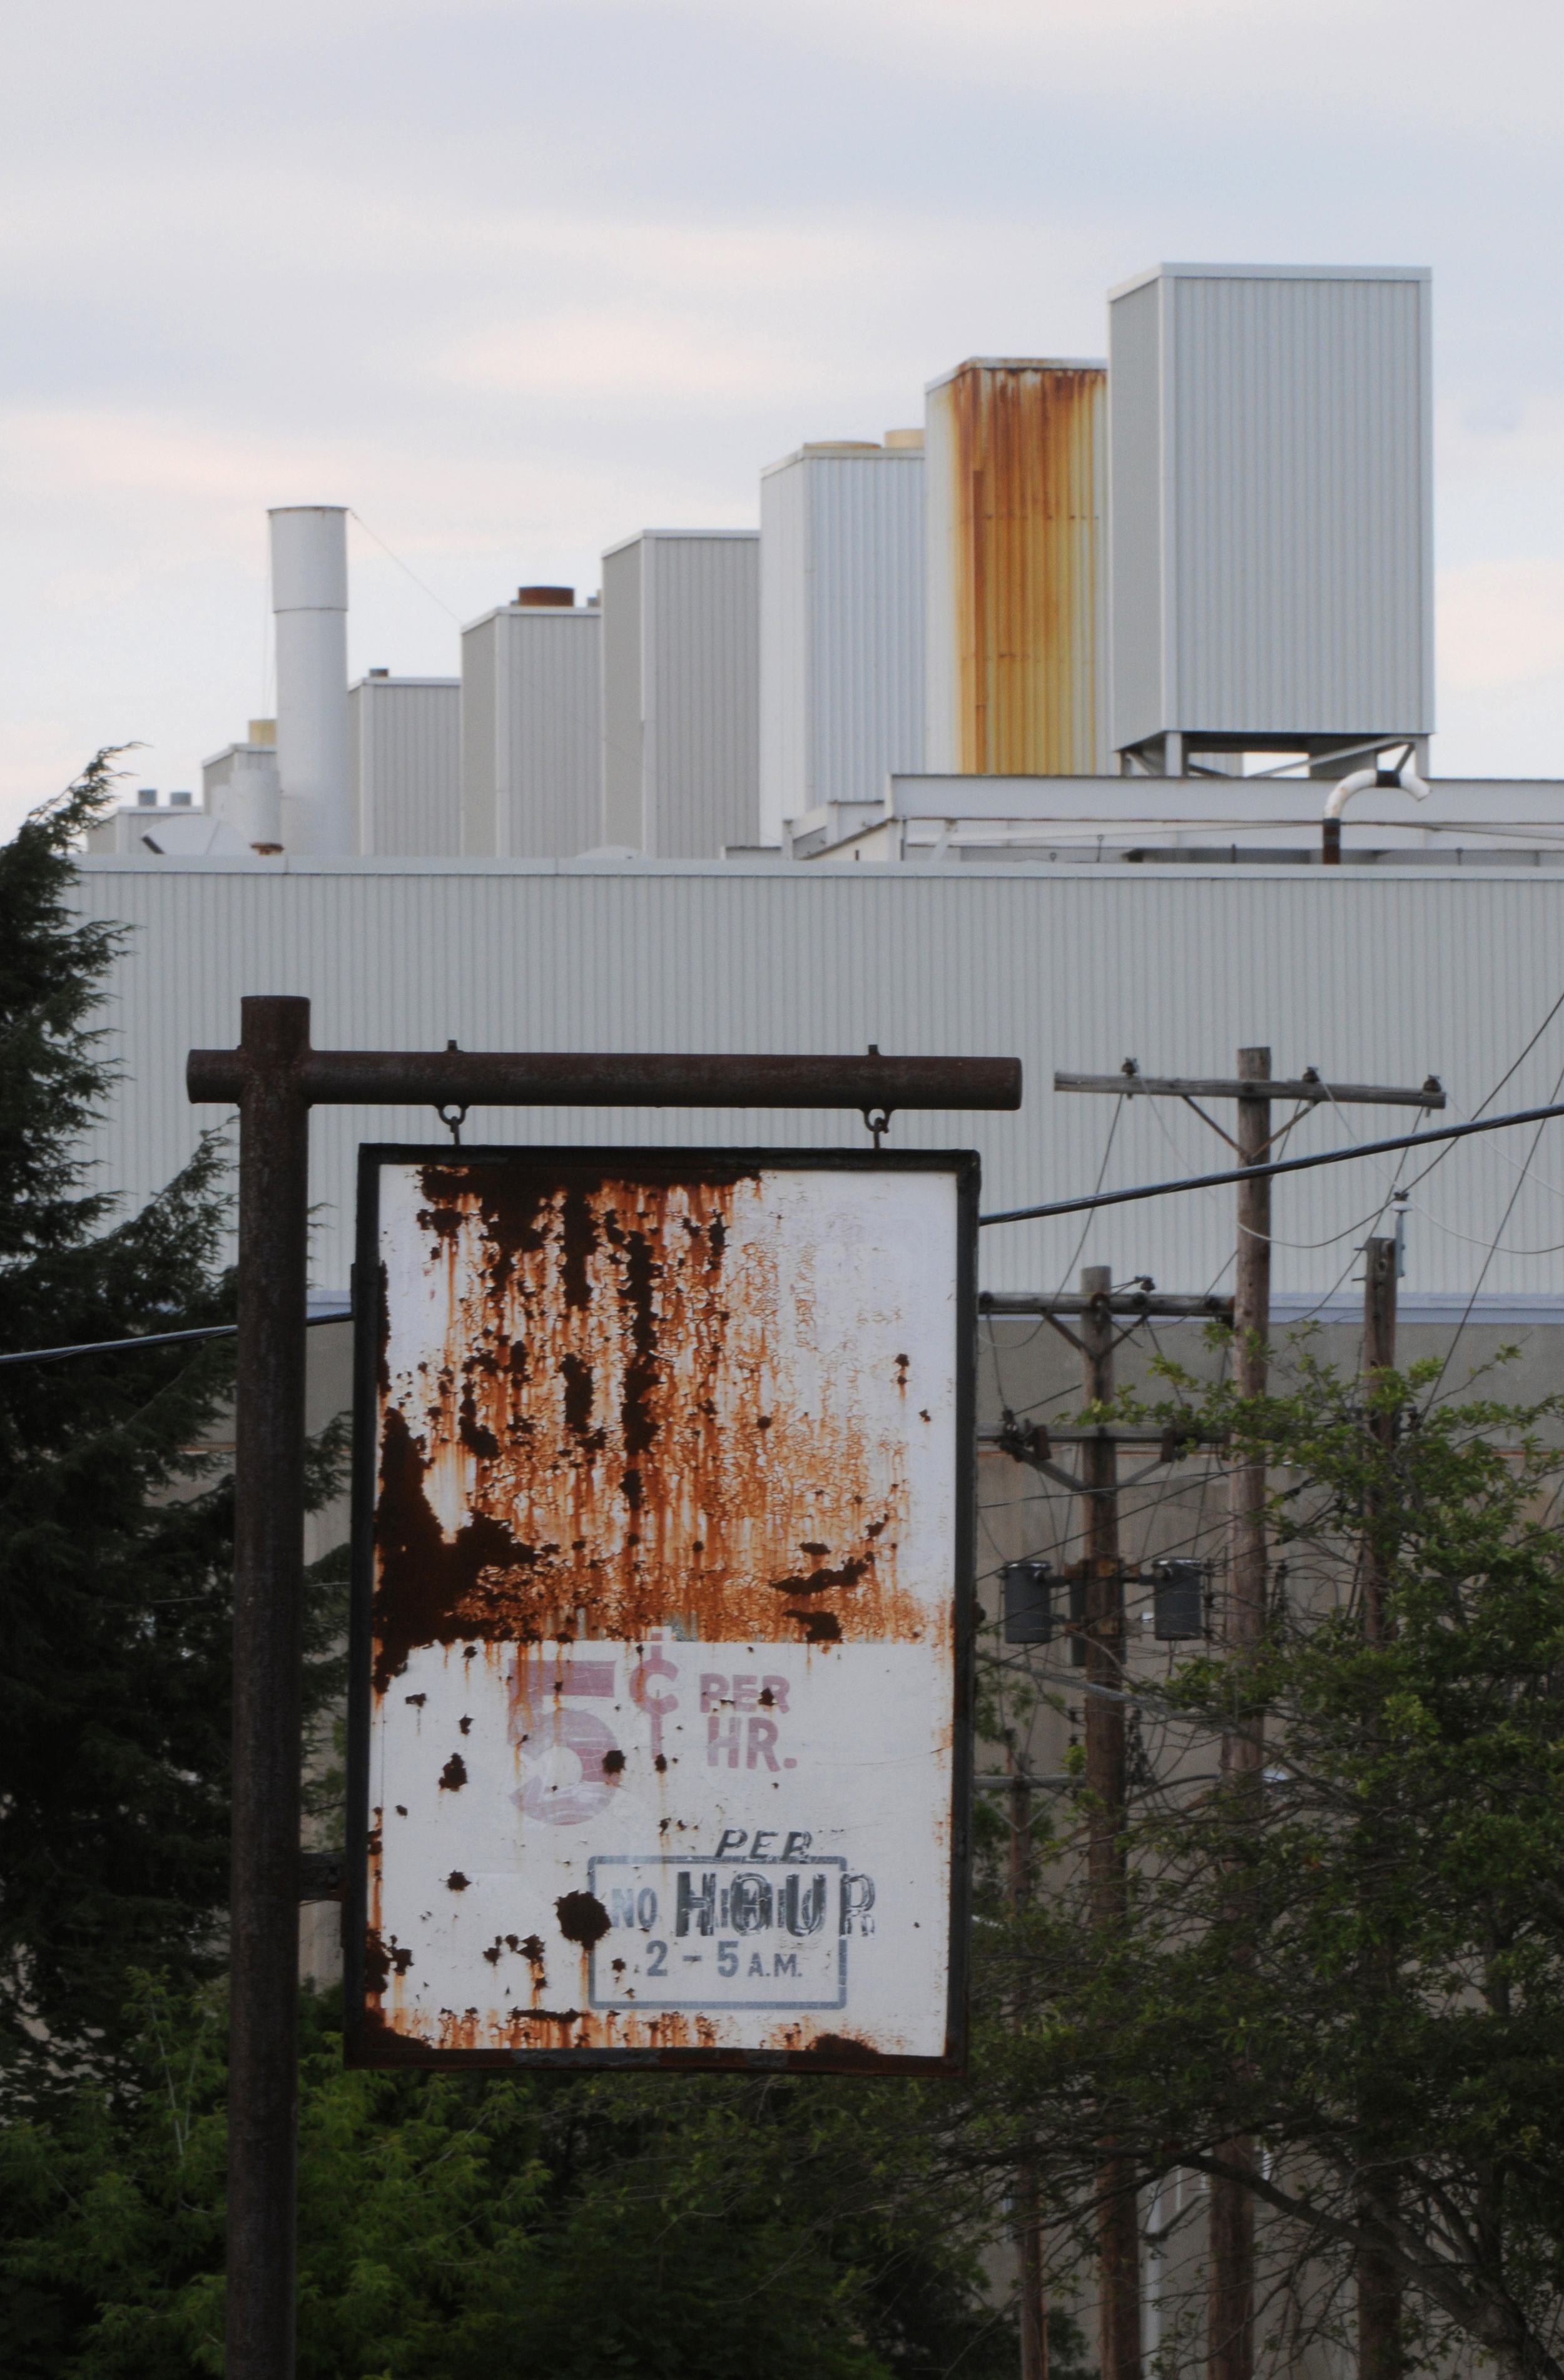 One of the most contaminated buildings on the former IBM campus, Building 18, is shown behind a parking sign dating back to more prosperous times in Endicott. Spills and leaks of toxic chemicals at the plant, including a documented 1979 leak of 4,100 gallons of TCE - a chemical used to clean computer circuit boards - left behind volatile organic compounds in the town's soil and aquifer. IBM has spent millions on clean-up.